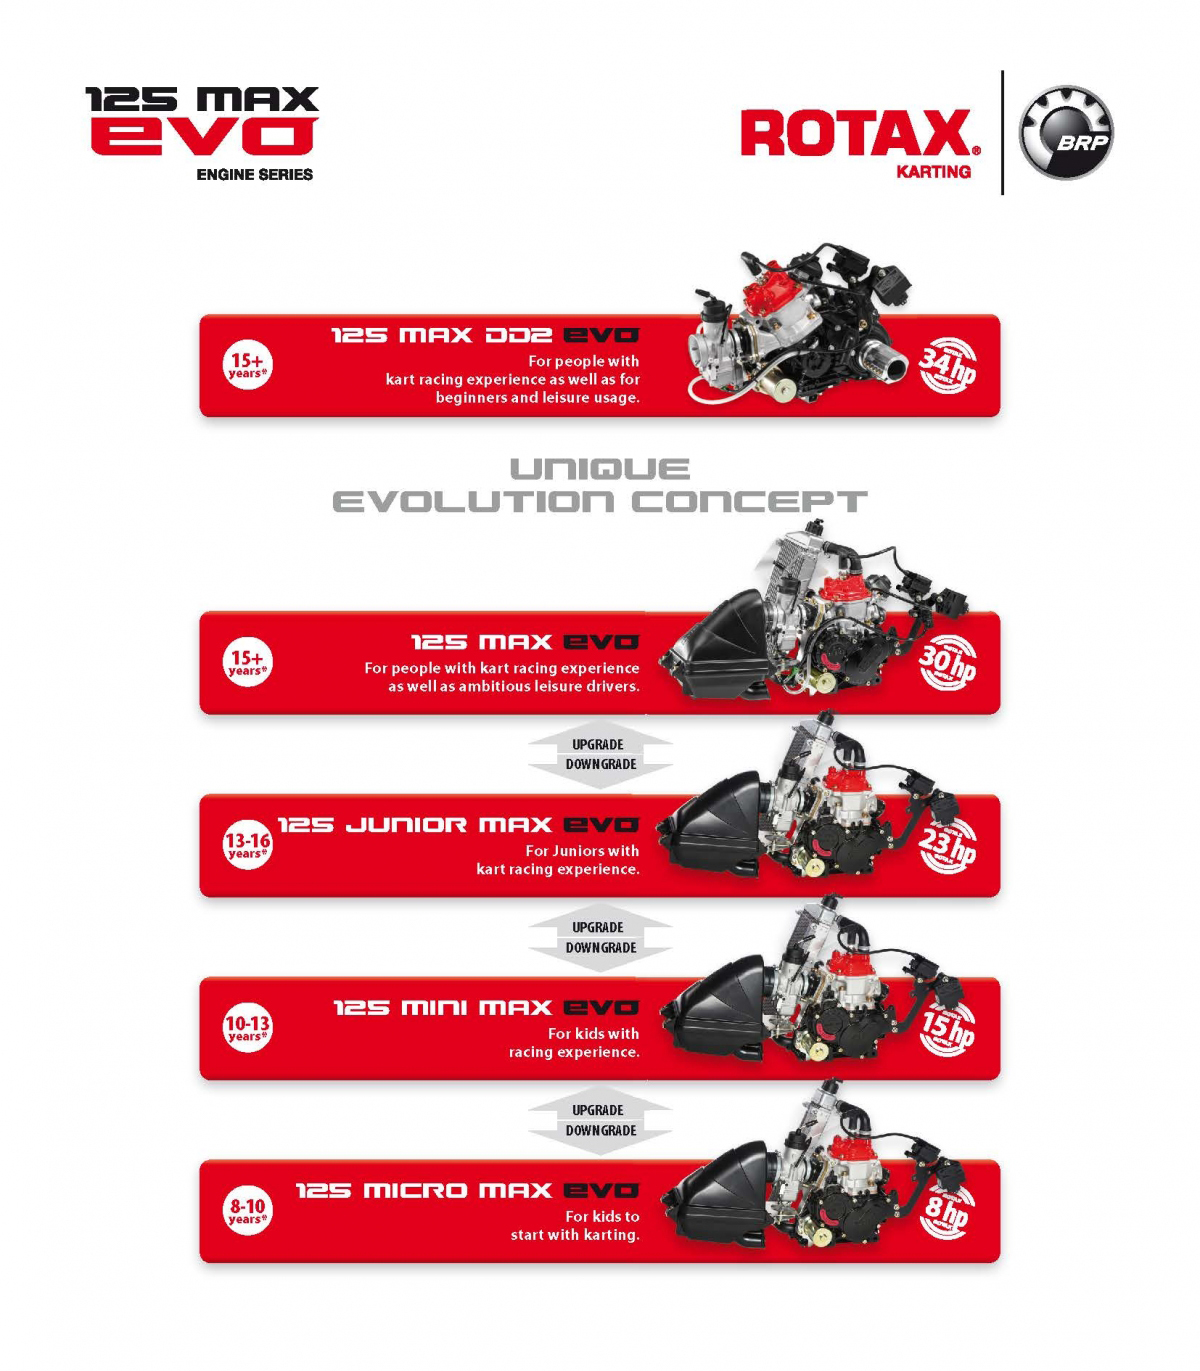 Rotax Service centers 2016